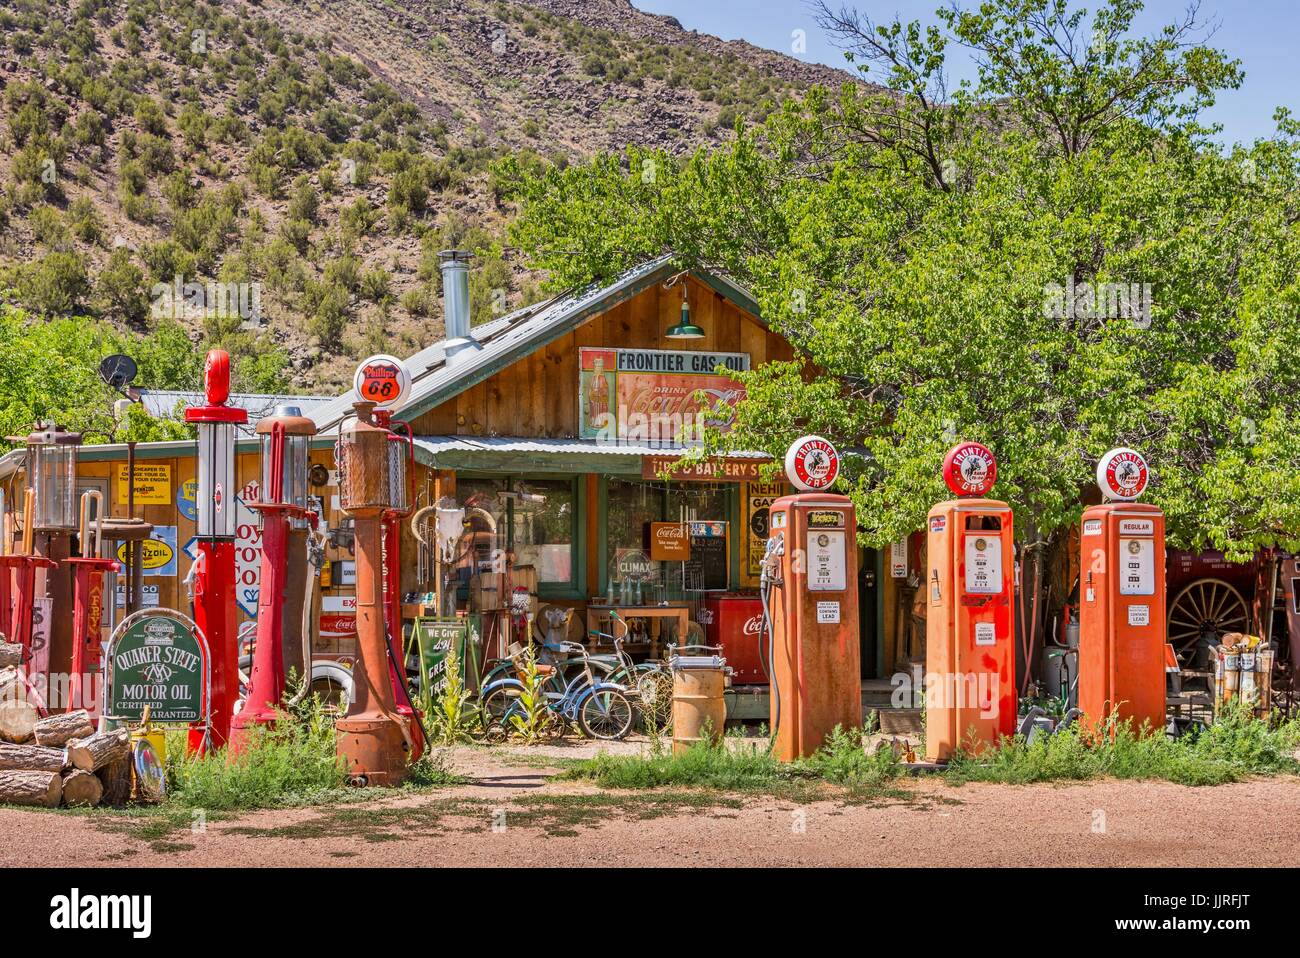 Vintage gas pumps, antique signs and gas station memorabilia at the